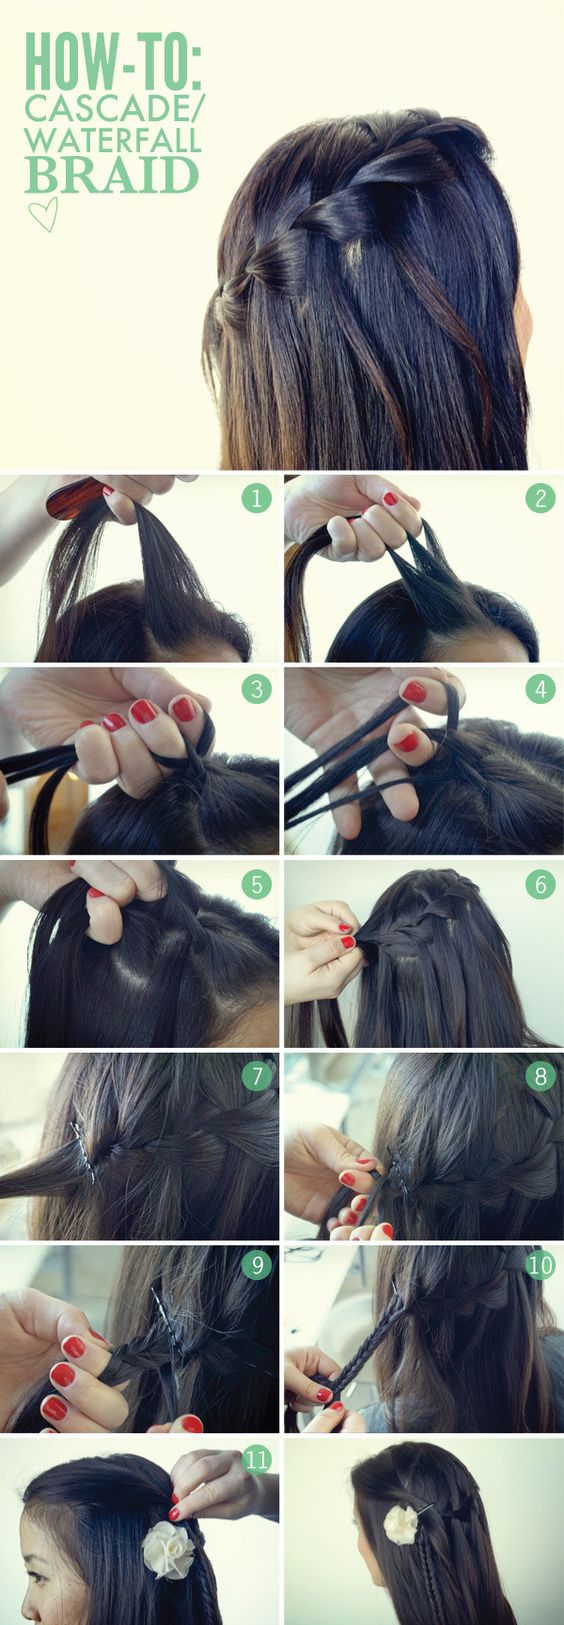 How-To: The Cascade/Waterfall Braid.  just taught myself how to french braid and fishtail braid....this is the next on my list :)  looks simple